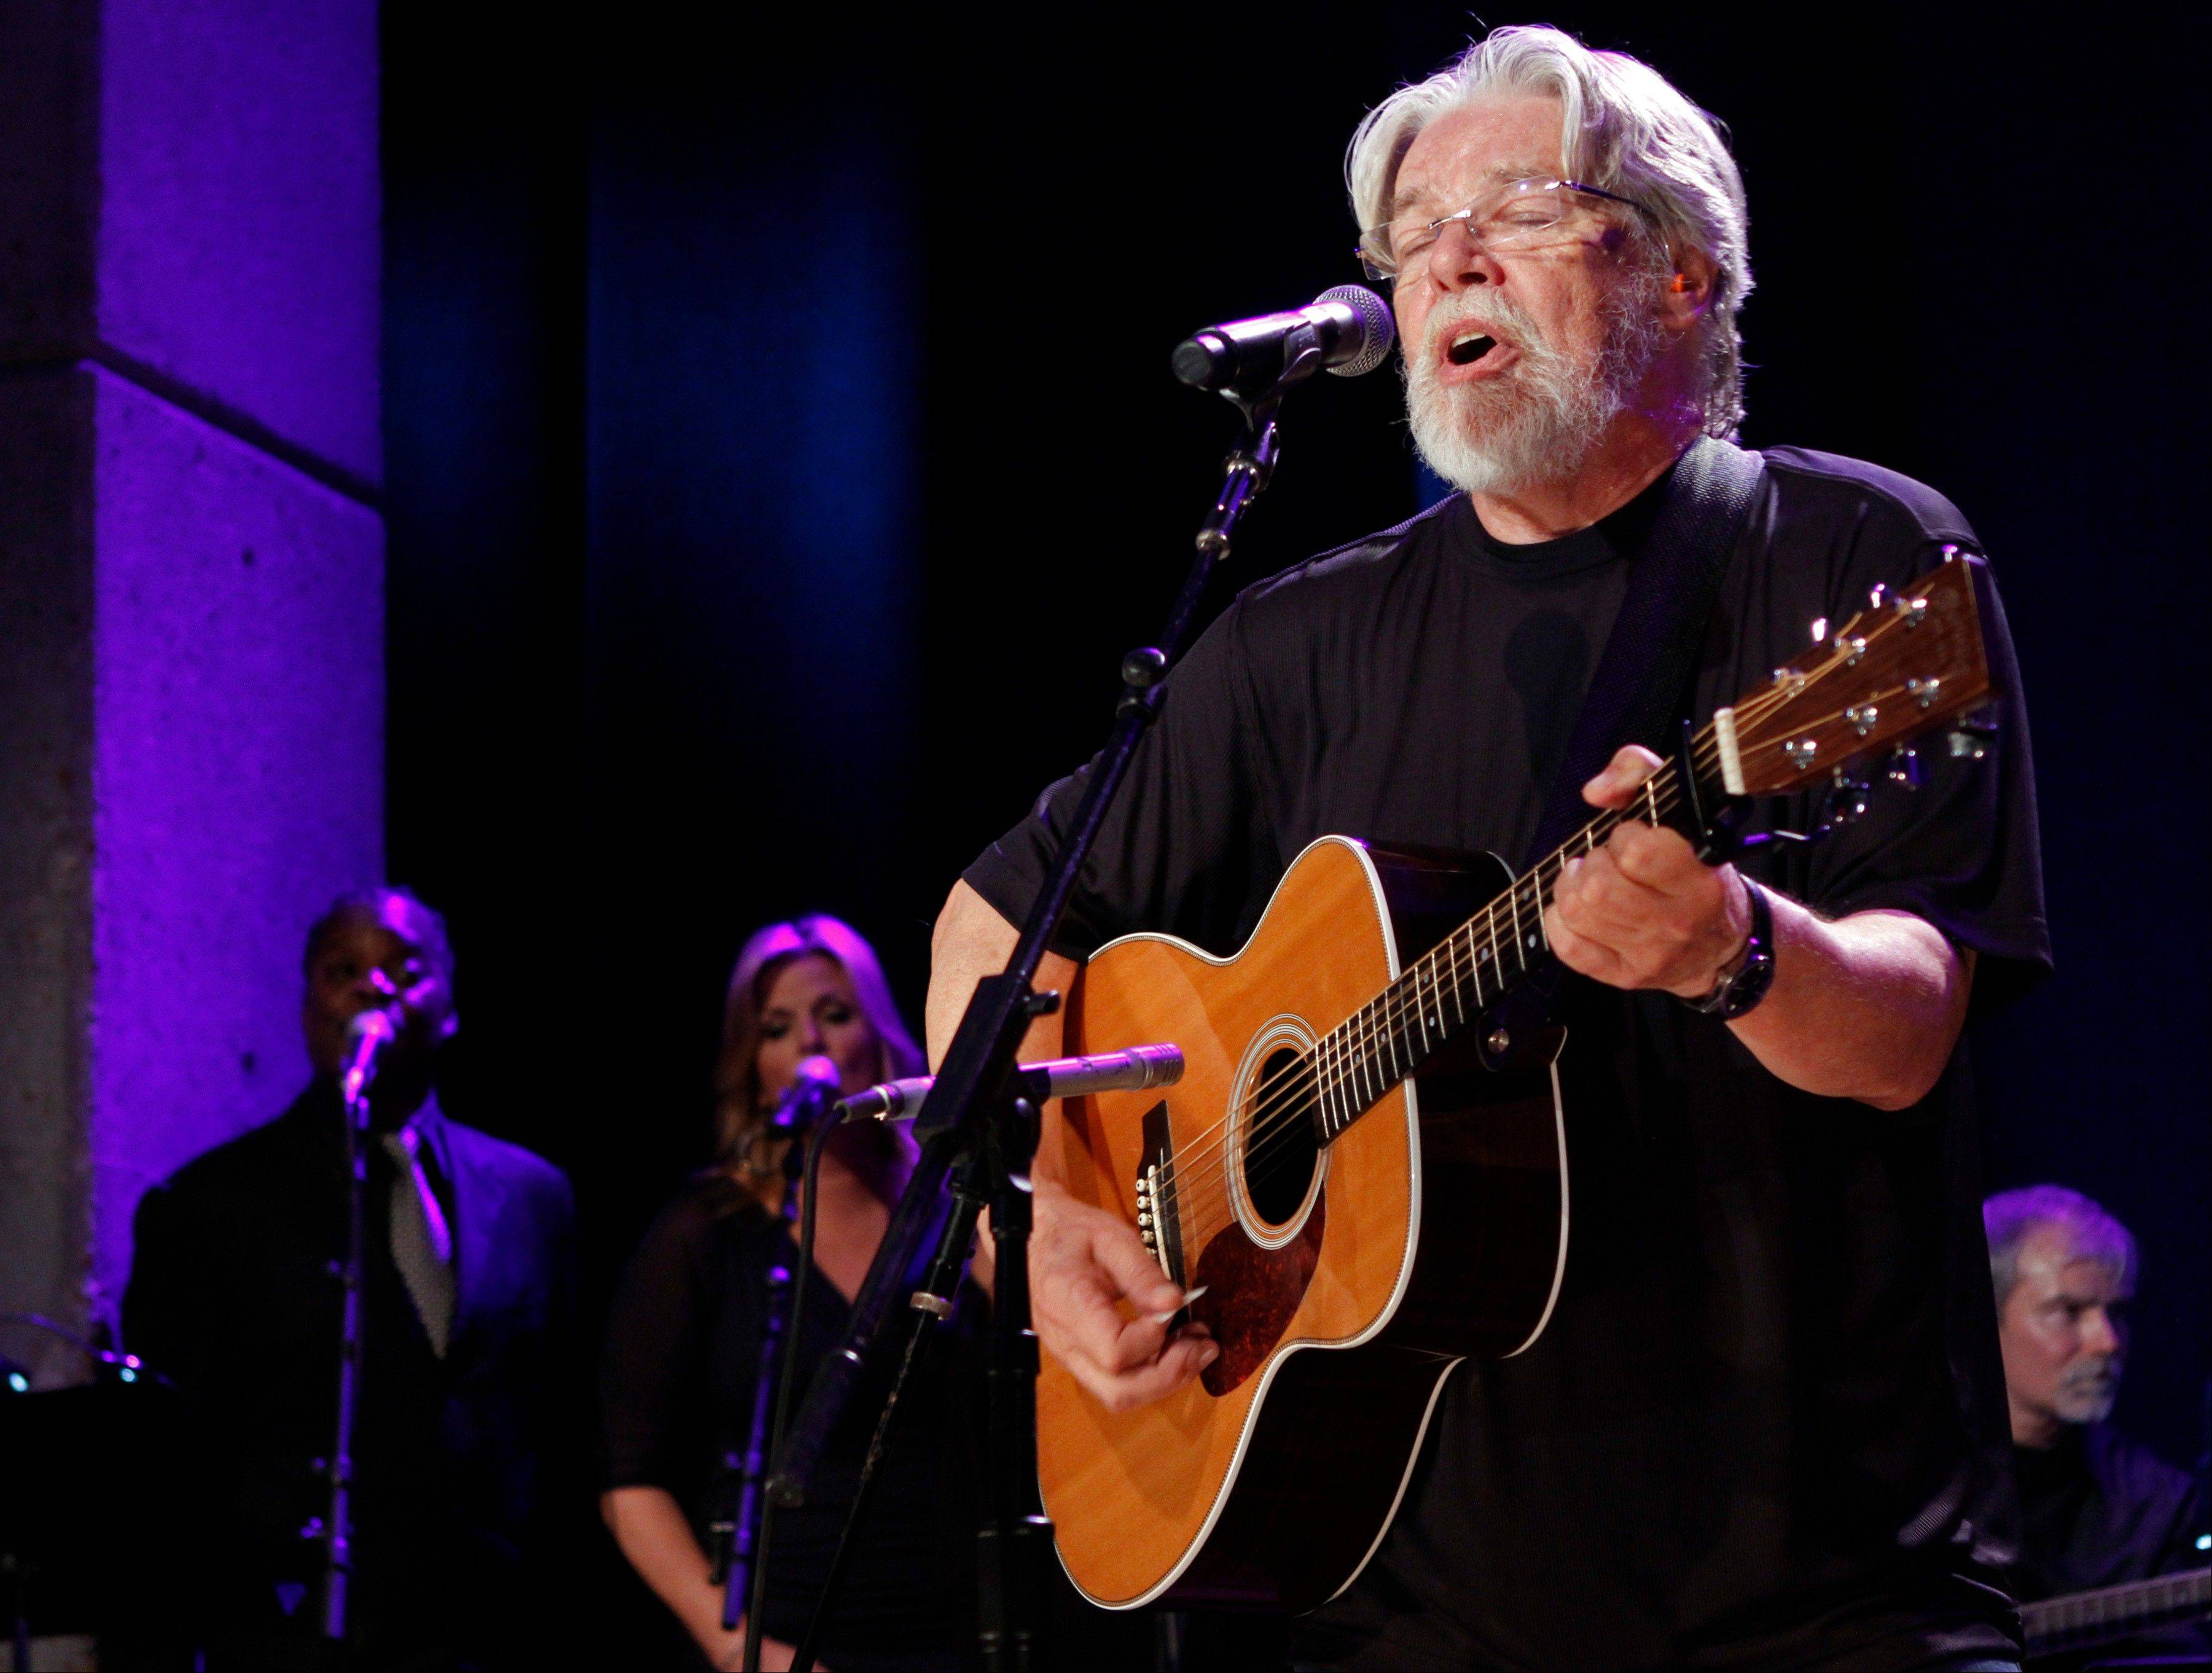 Bob Seger performs at the Country Music Hall of Fame Inductions in Nashville, Tenn.